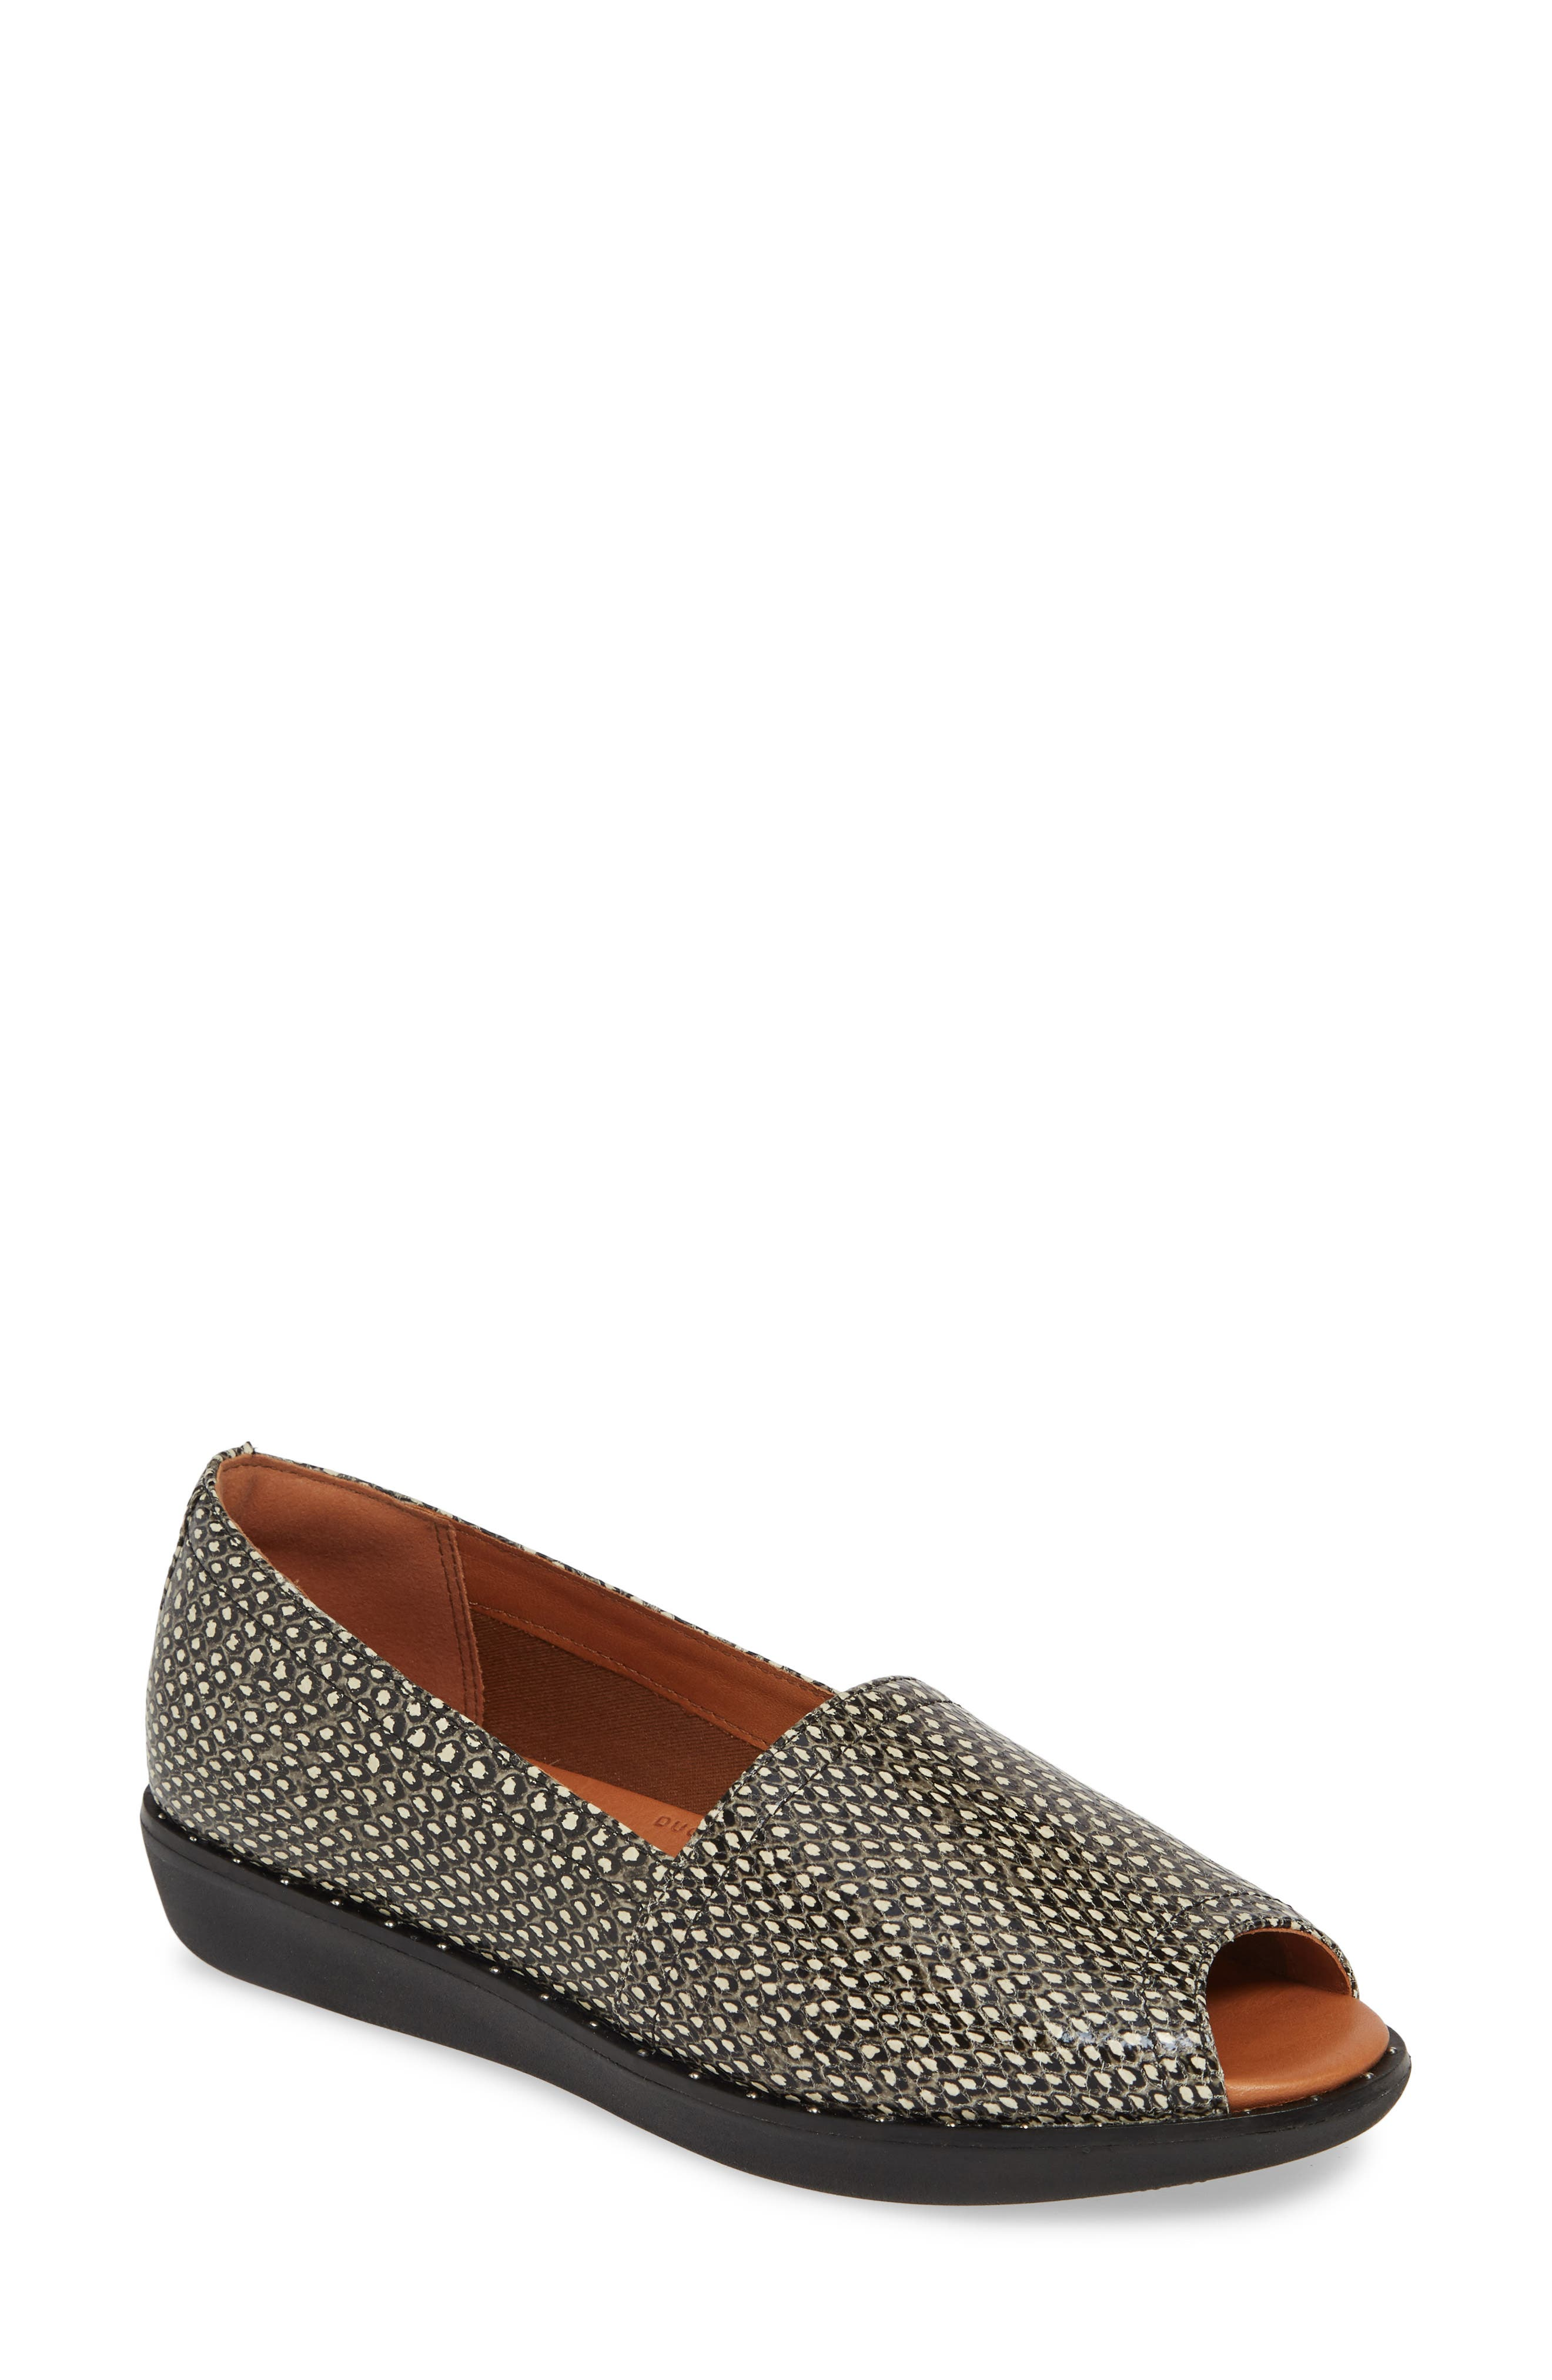 Fitflop Nadia Dotted Flat, Black